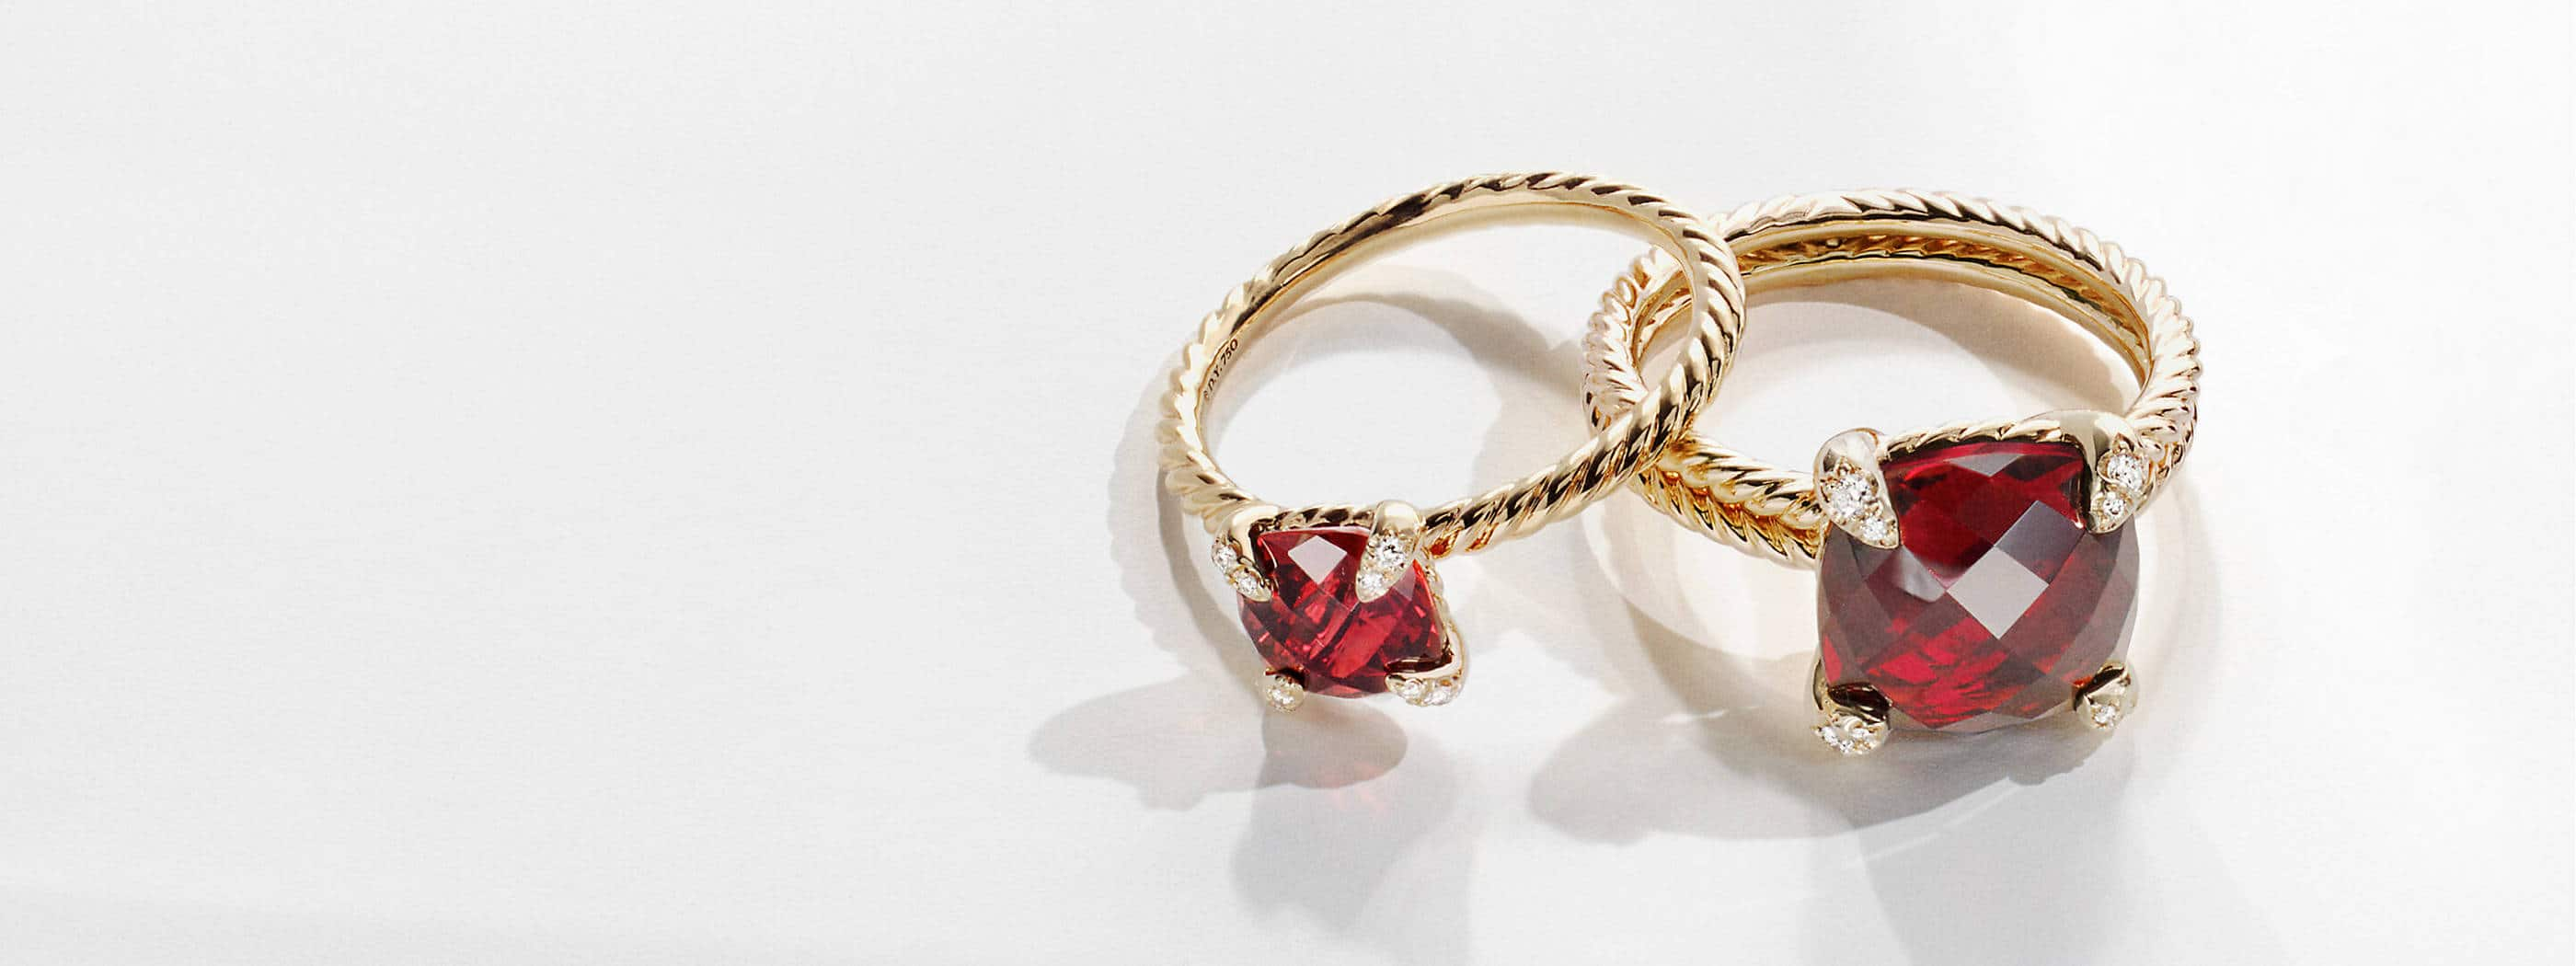 A color photograph shows a pair of David Yurman women's rings sitting on a white stone with shadows. The jewelry is crafted from Cabled 18K yellow gold with faceted garnet center stones. The rings have pavé diamonds on the prongs.